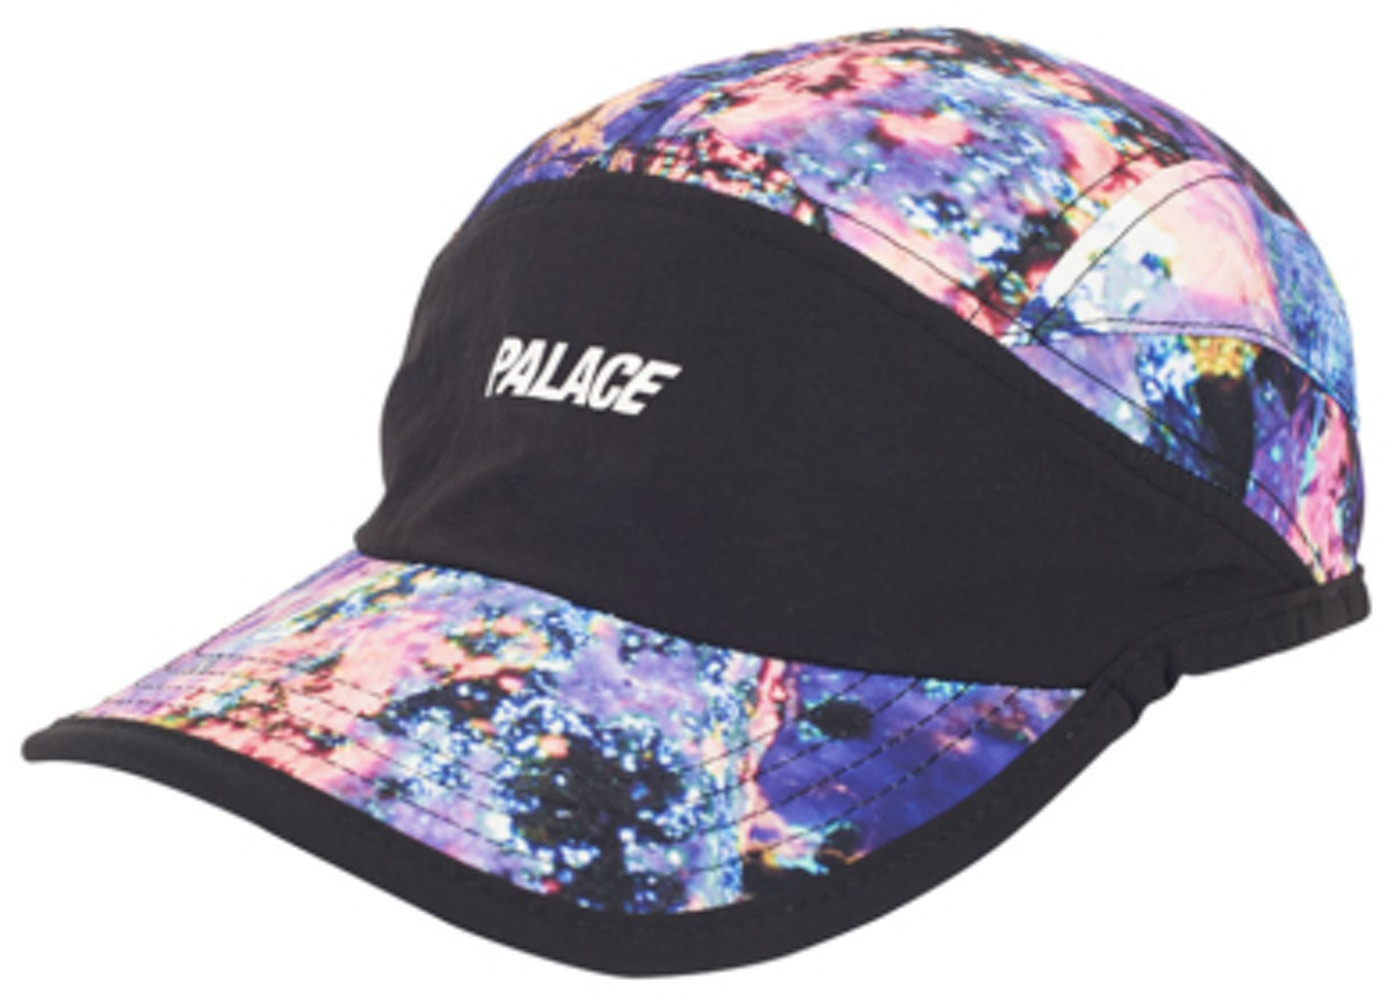 Palace Running Hat Black Purple White - Summer 2017 c402b6ac060